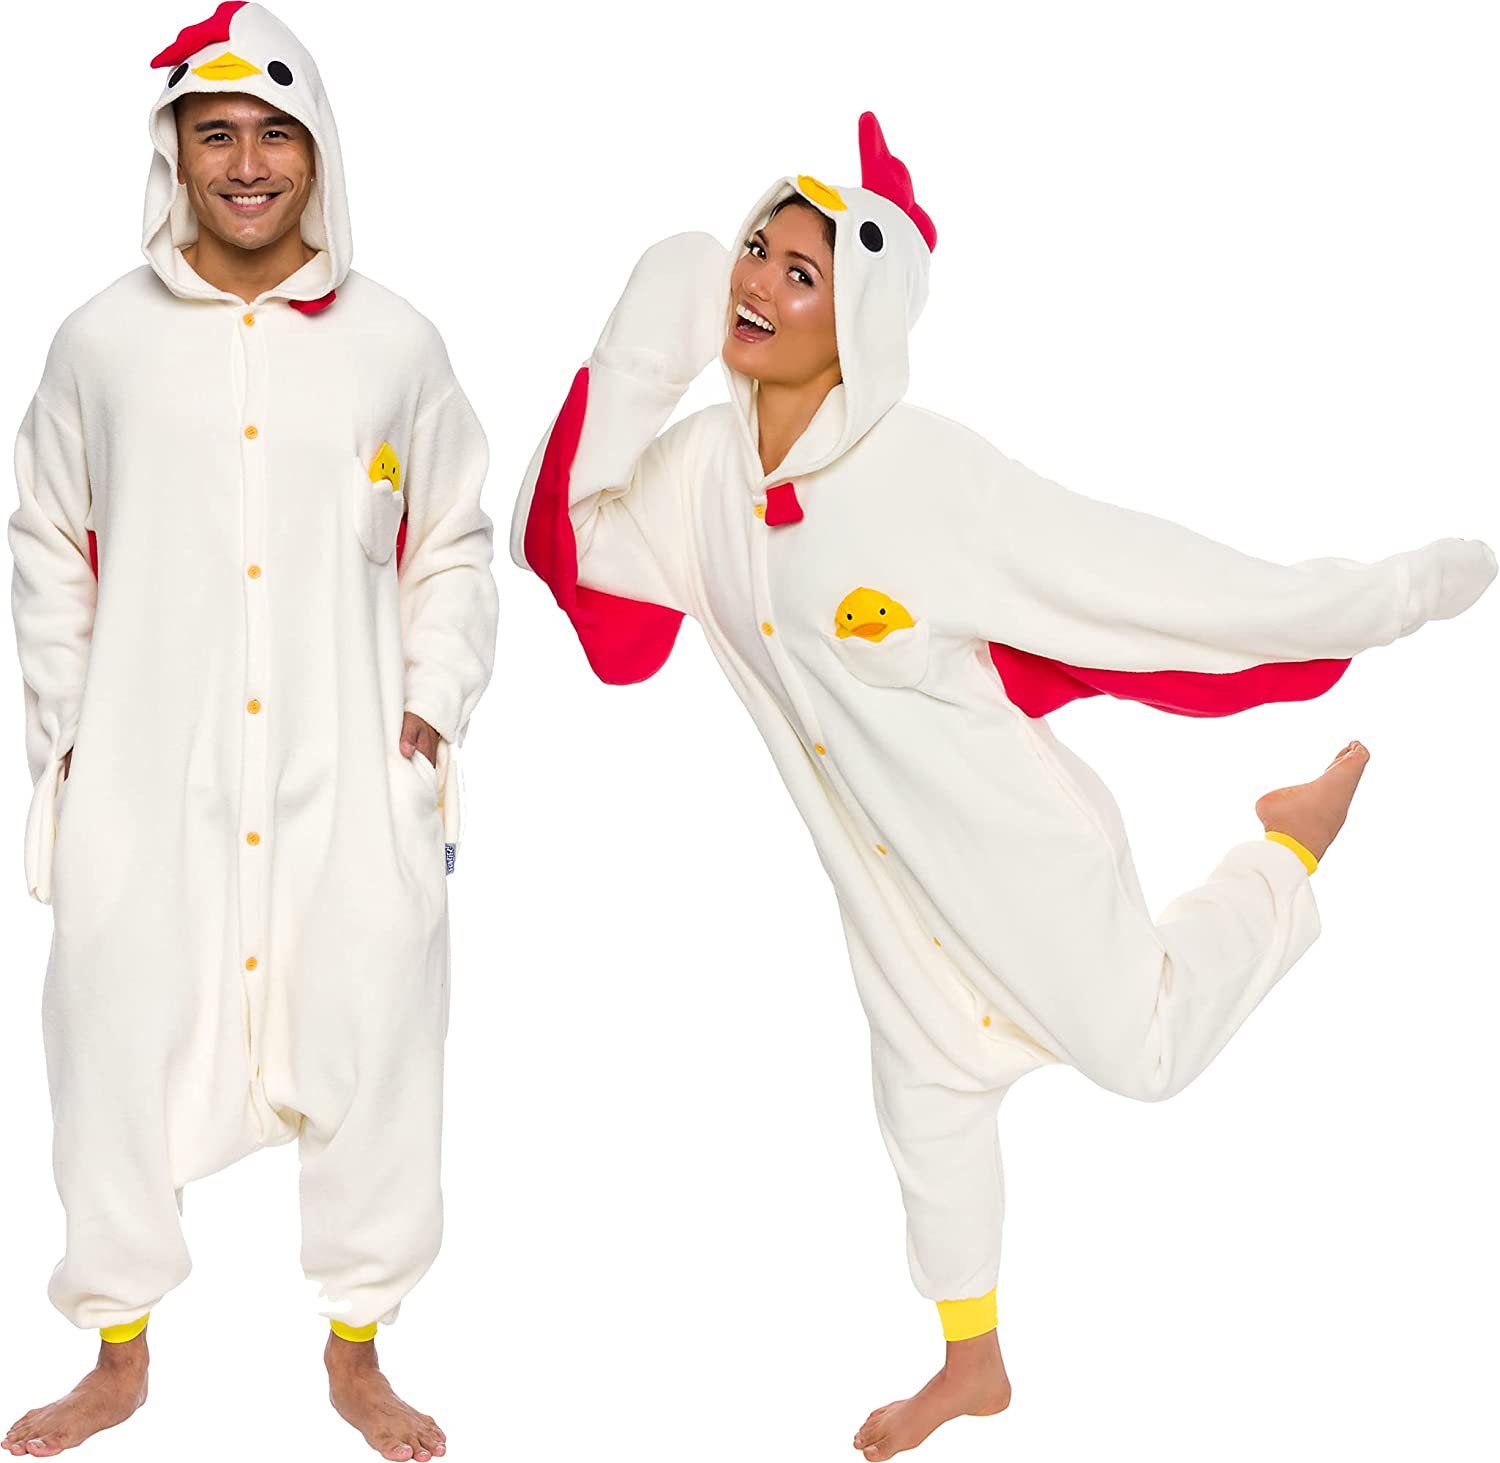 Silver Lilly Cheap sale Unisex Adult Pajamas - Chic One 2021 Cosplay Piece Plush